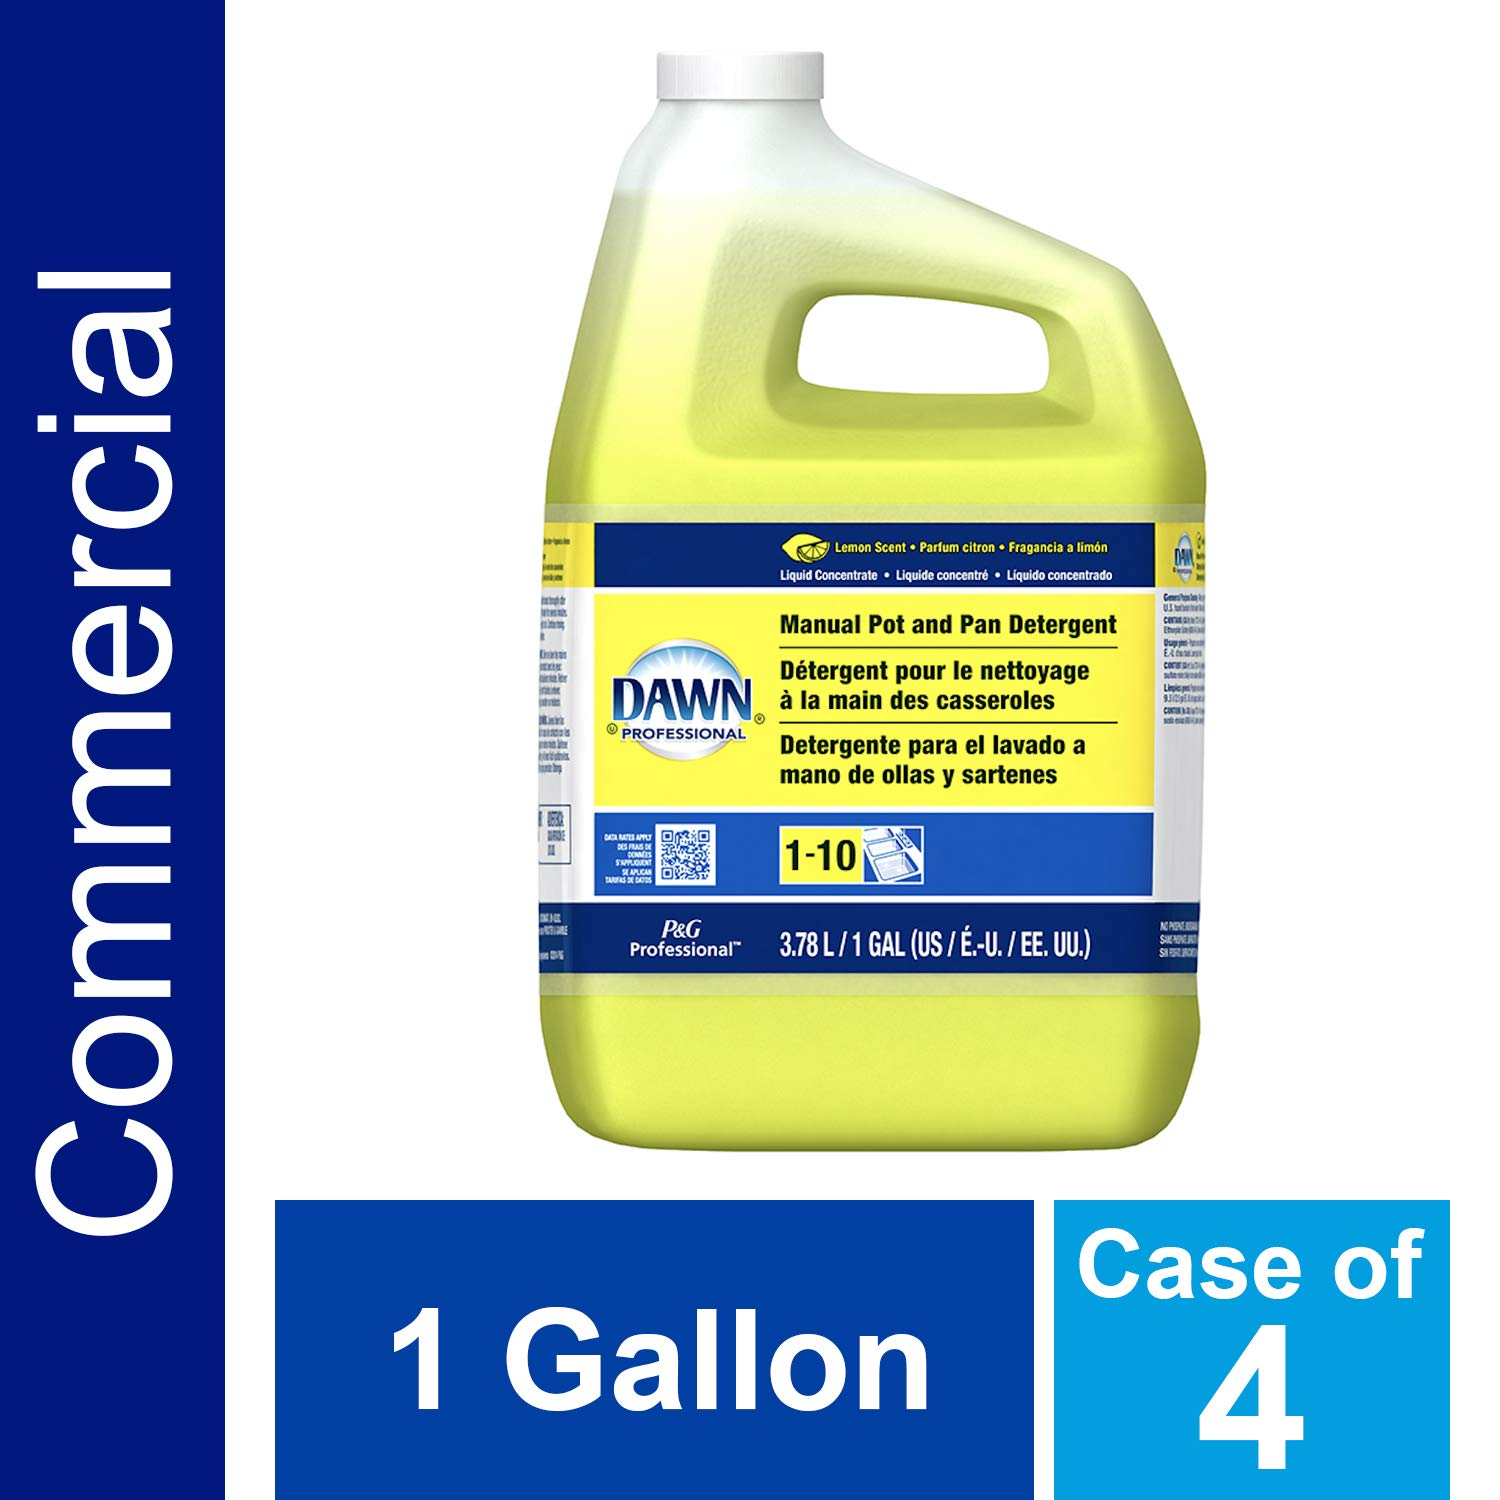 Dishwashing Liquid Soap Detergent by Dawn Professional, Bulk Degreaser Removes Greasy Foods from Pots, Pans and Dishes in Commercial Restaurant Kitchens, ...